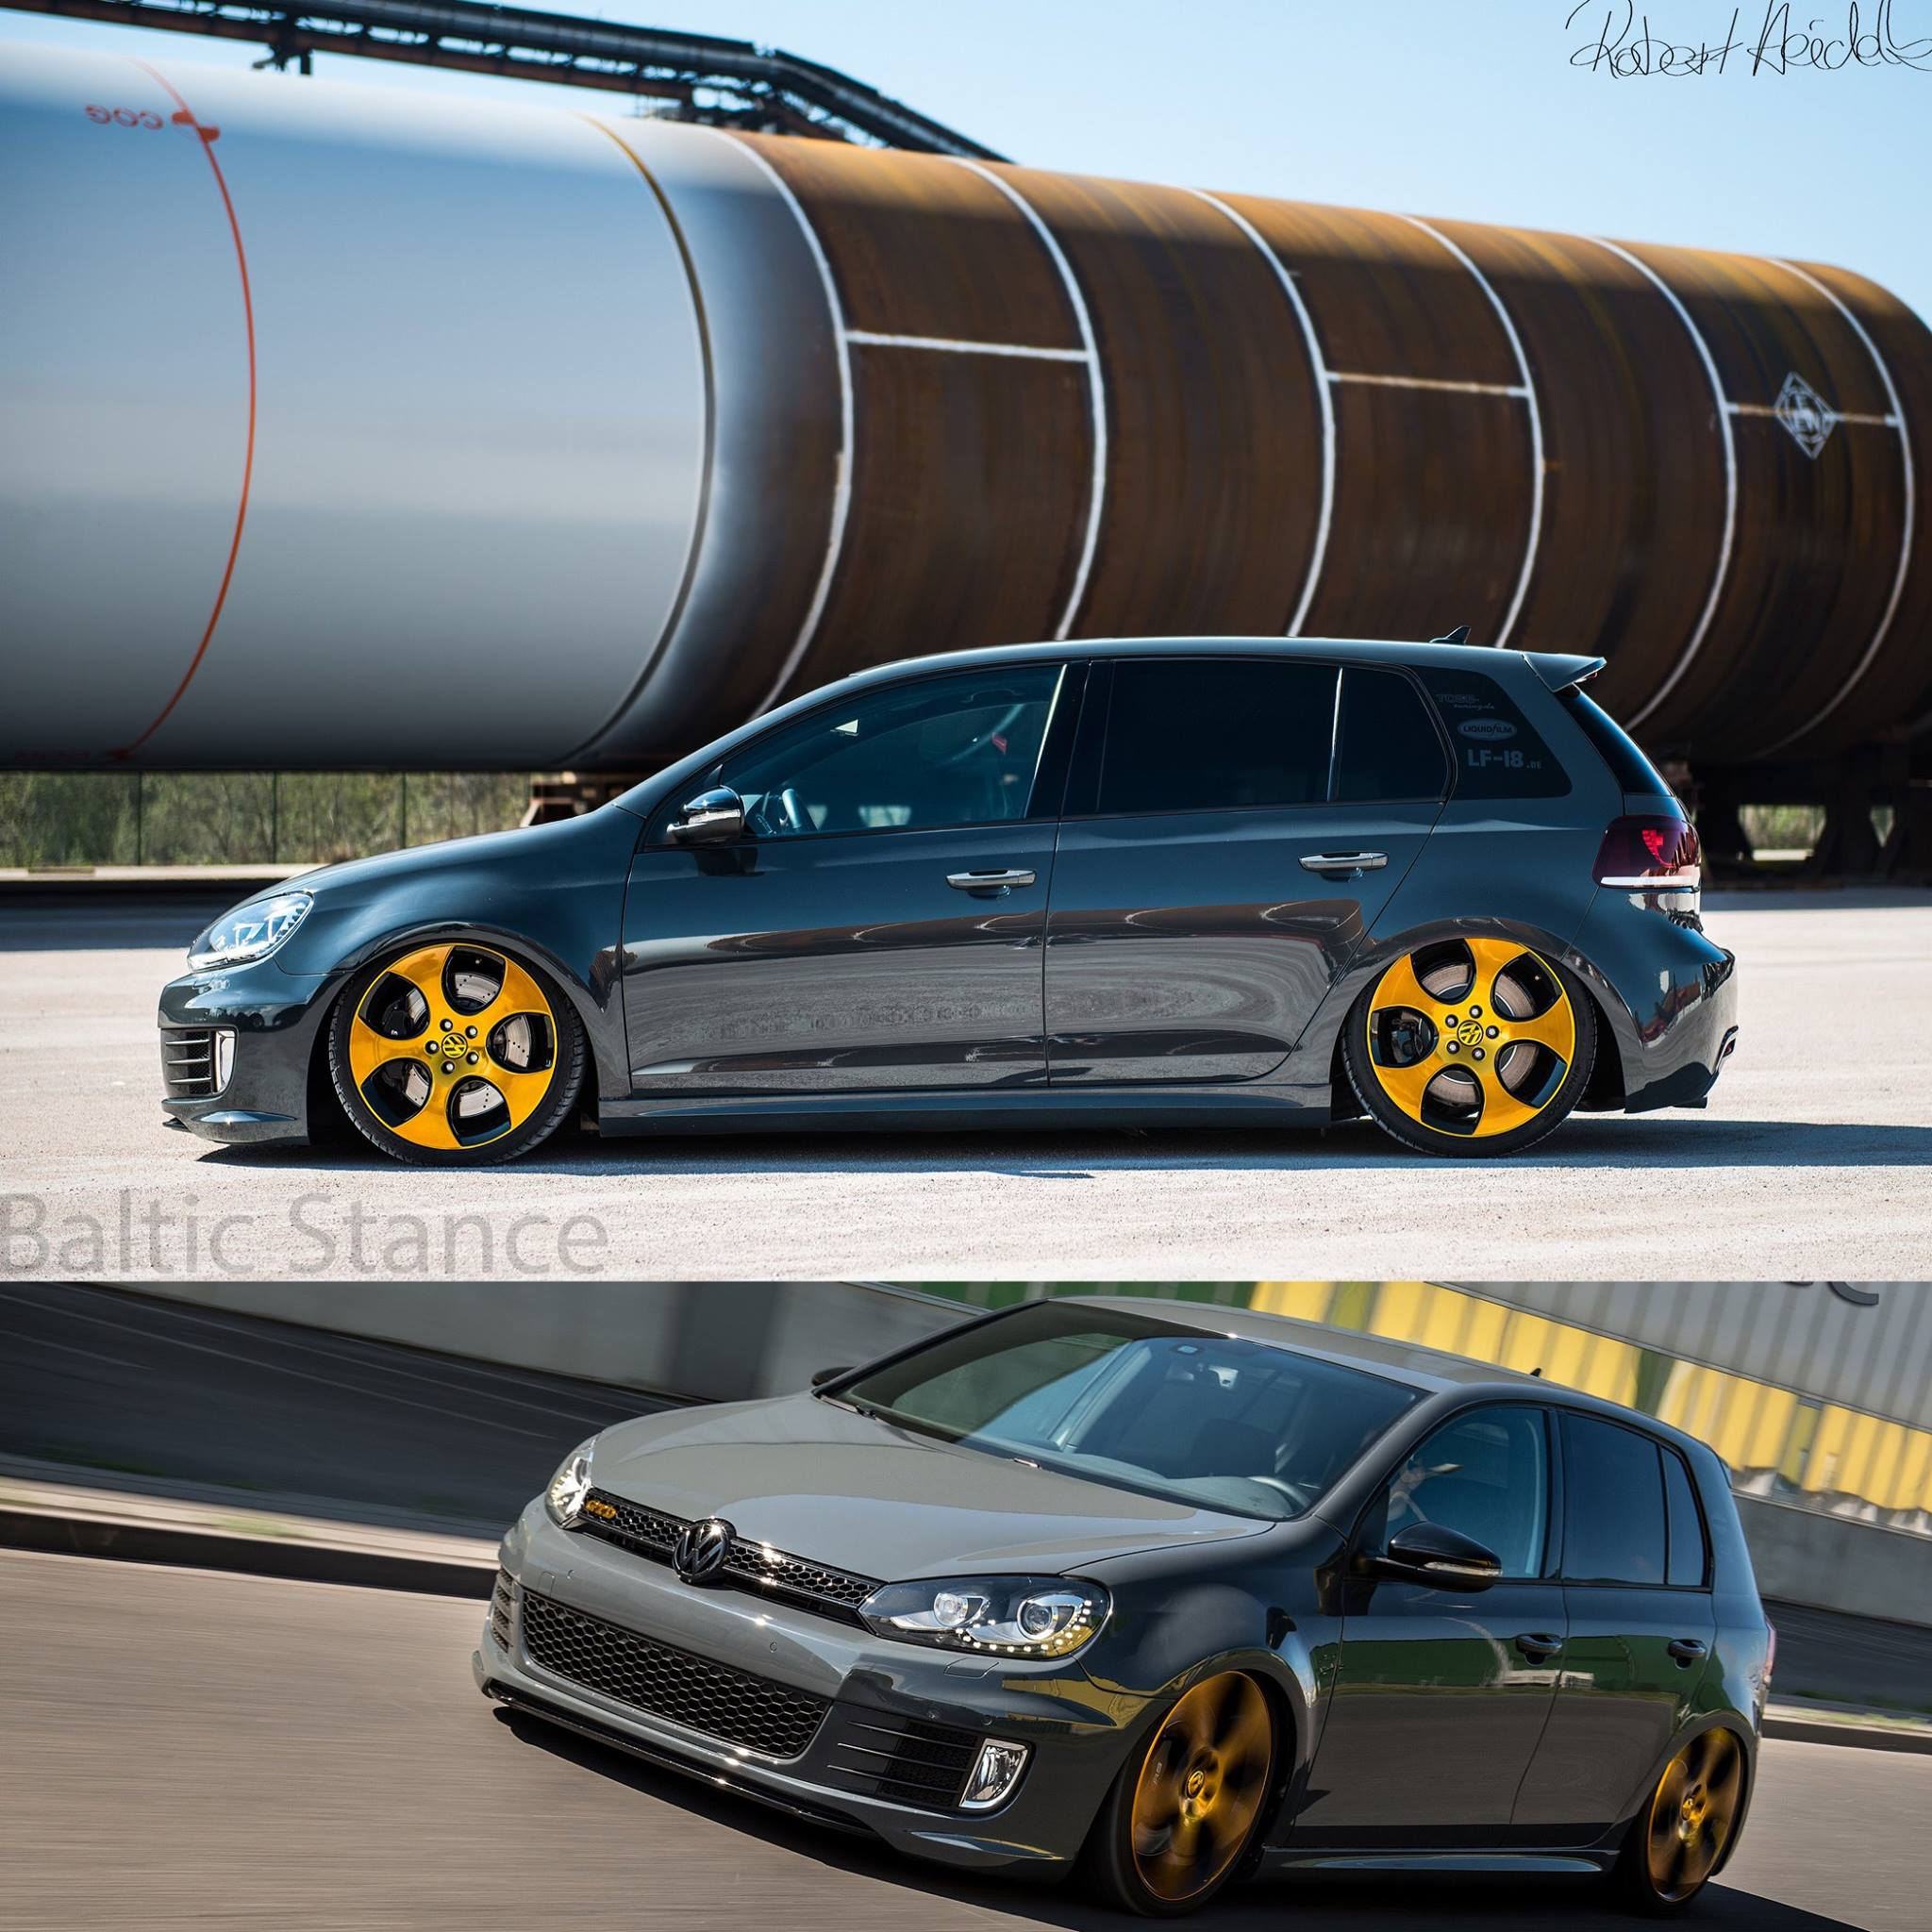 tino s vw golf 6 mit unserem k sport germany air ride. Black Bedroom Furniture Sets. Home Design Ideas